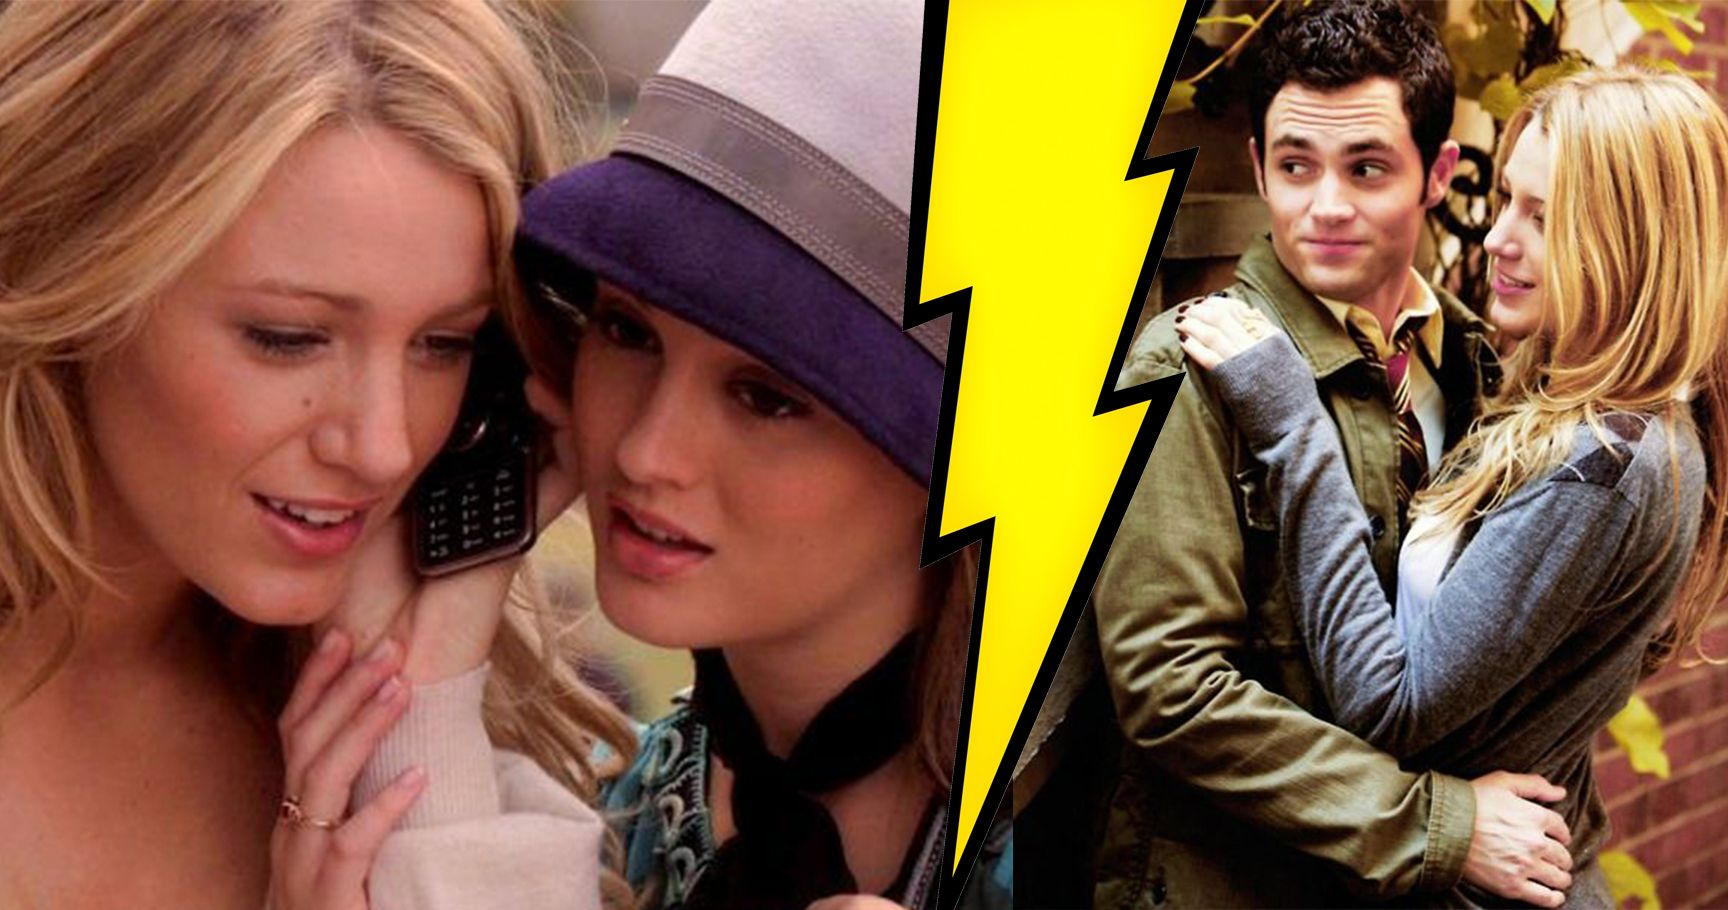 'Gossip Girl': 15 Scandalous Behind-The-Scenes Moments That Ooze Drama